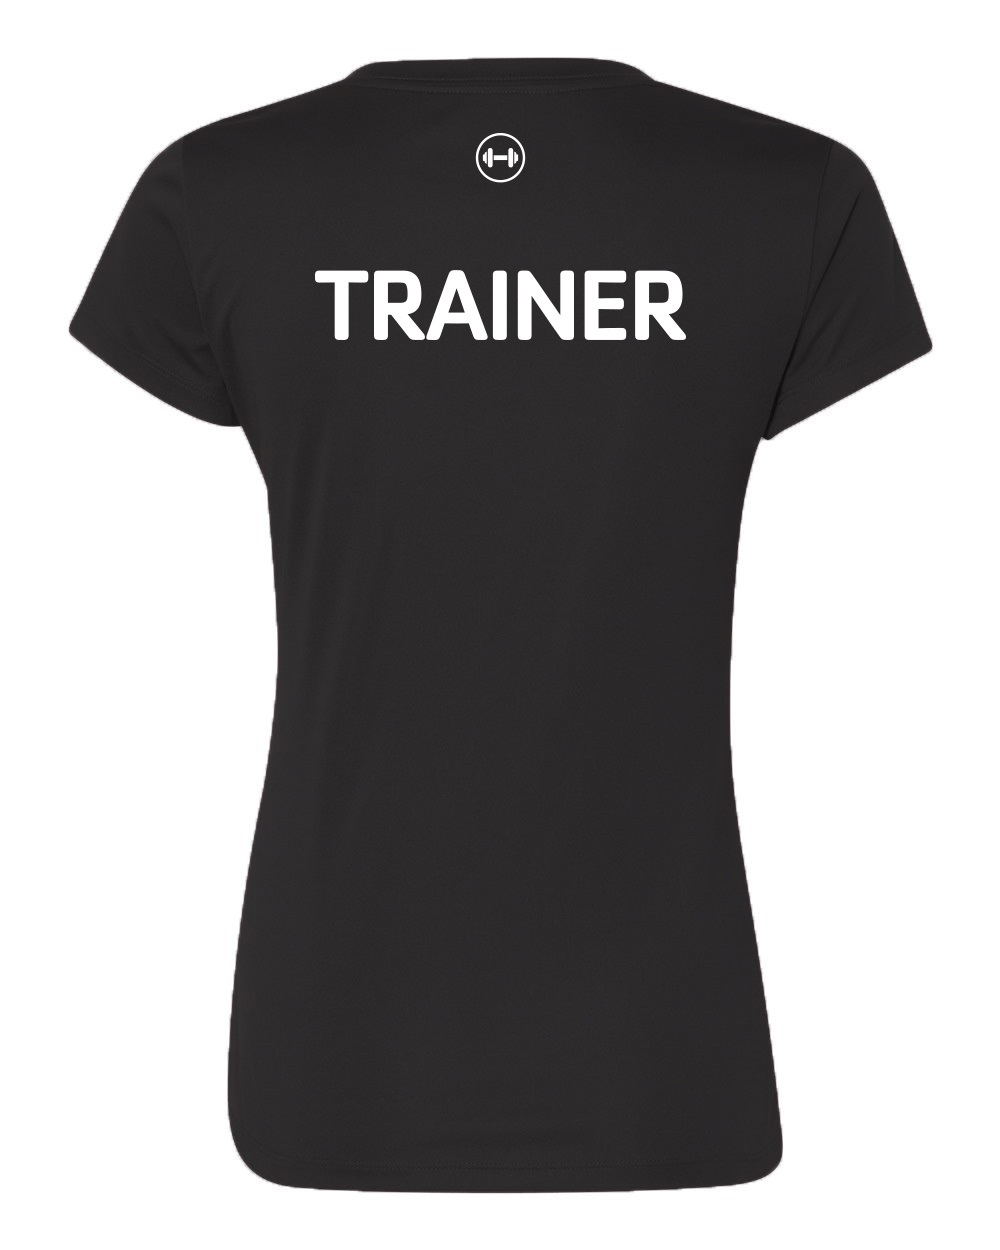 Trainer subcategory image